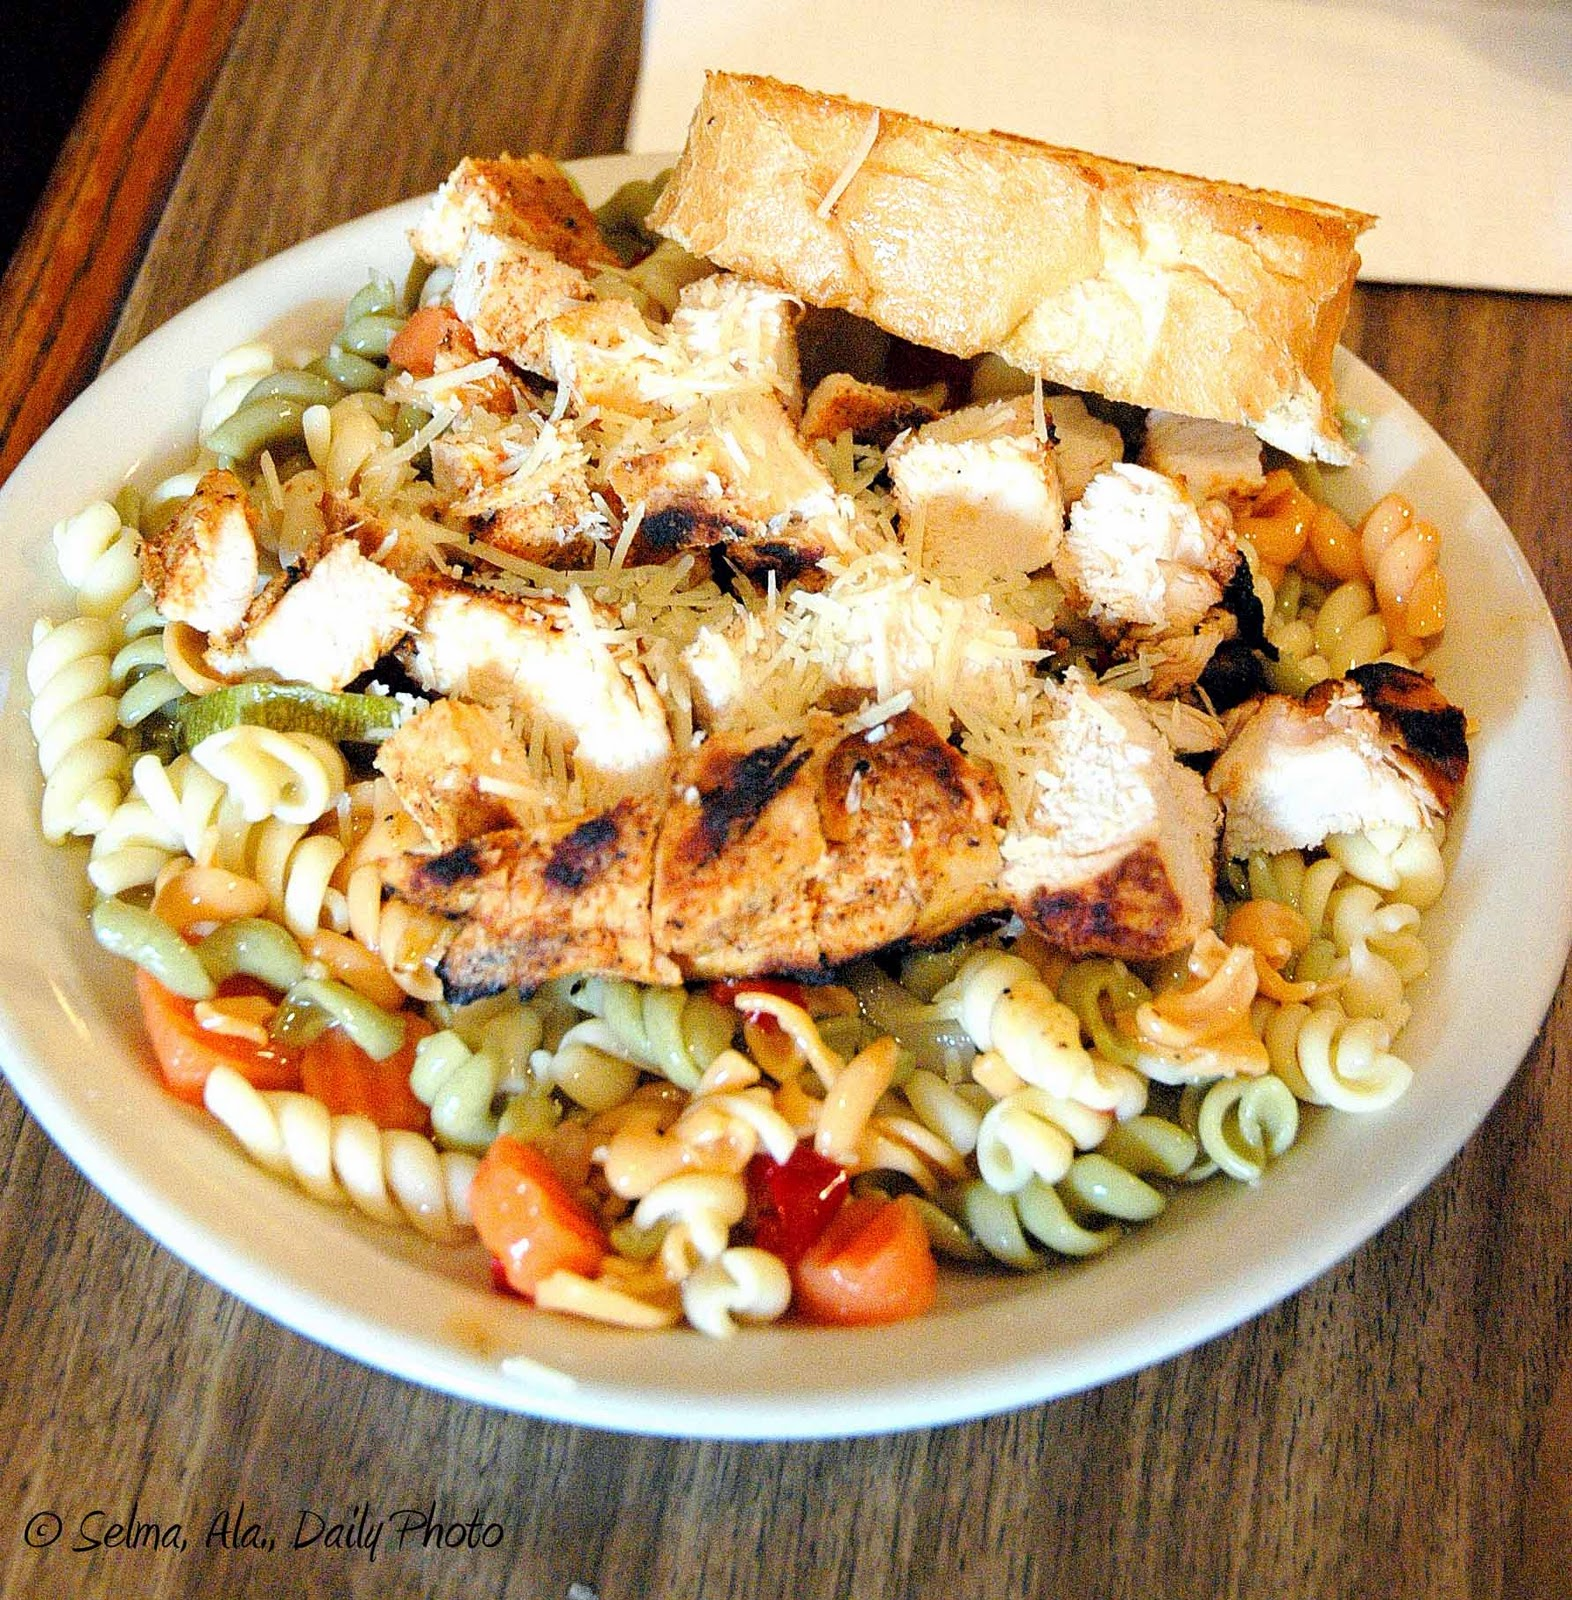 http://3.bp.blogspot.com/_Gq0vRY91-Y0/TNKr_3TpkpI/AAAAAAAAKNo/3_1WrI7CTyc/s1600/Grilled+Chicken+Pasta+Salad,+Grumbles.jpg